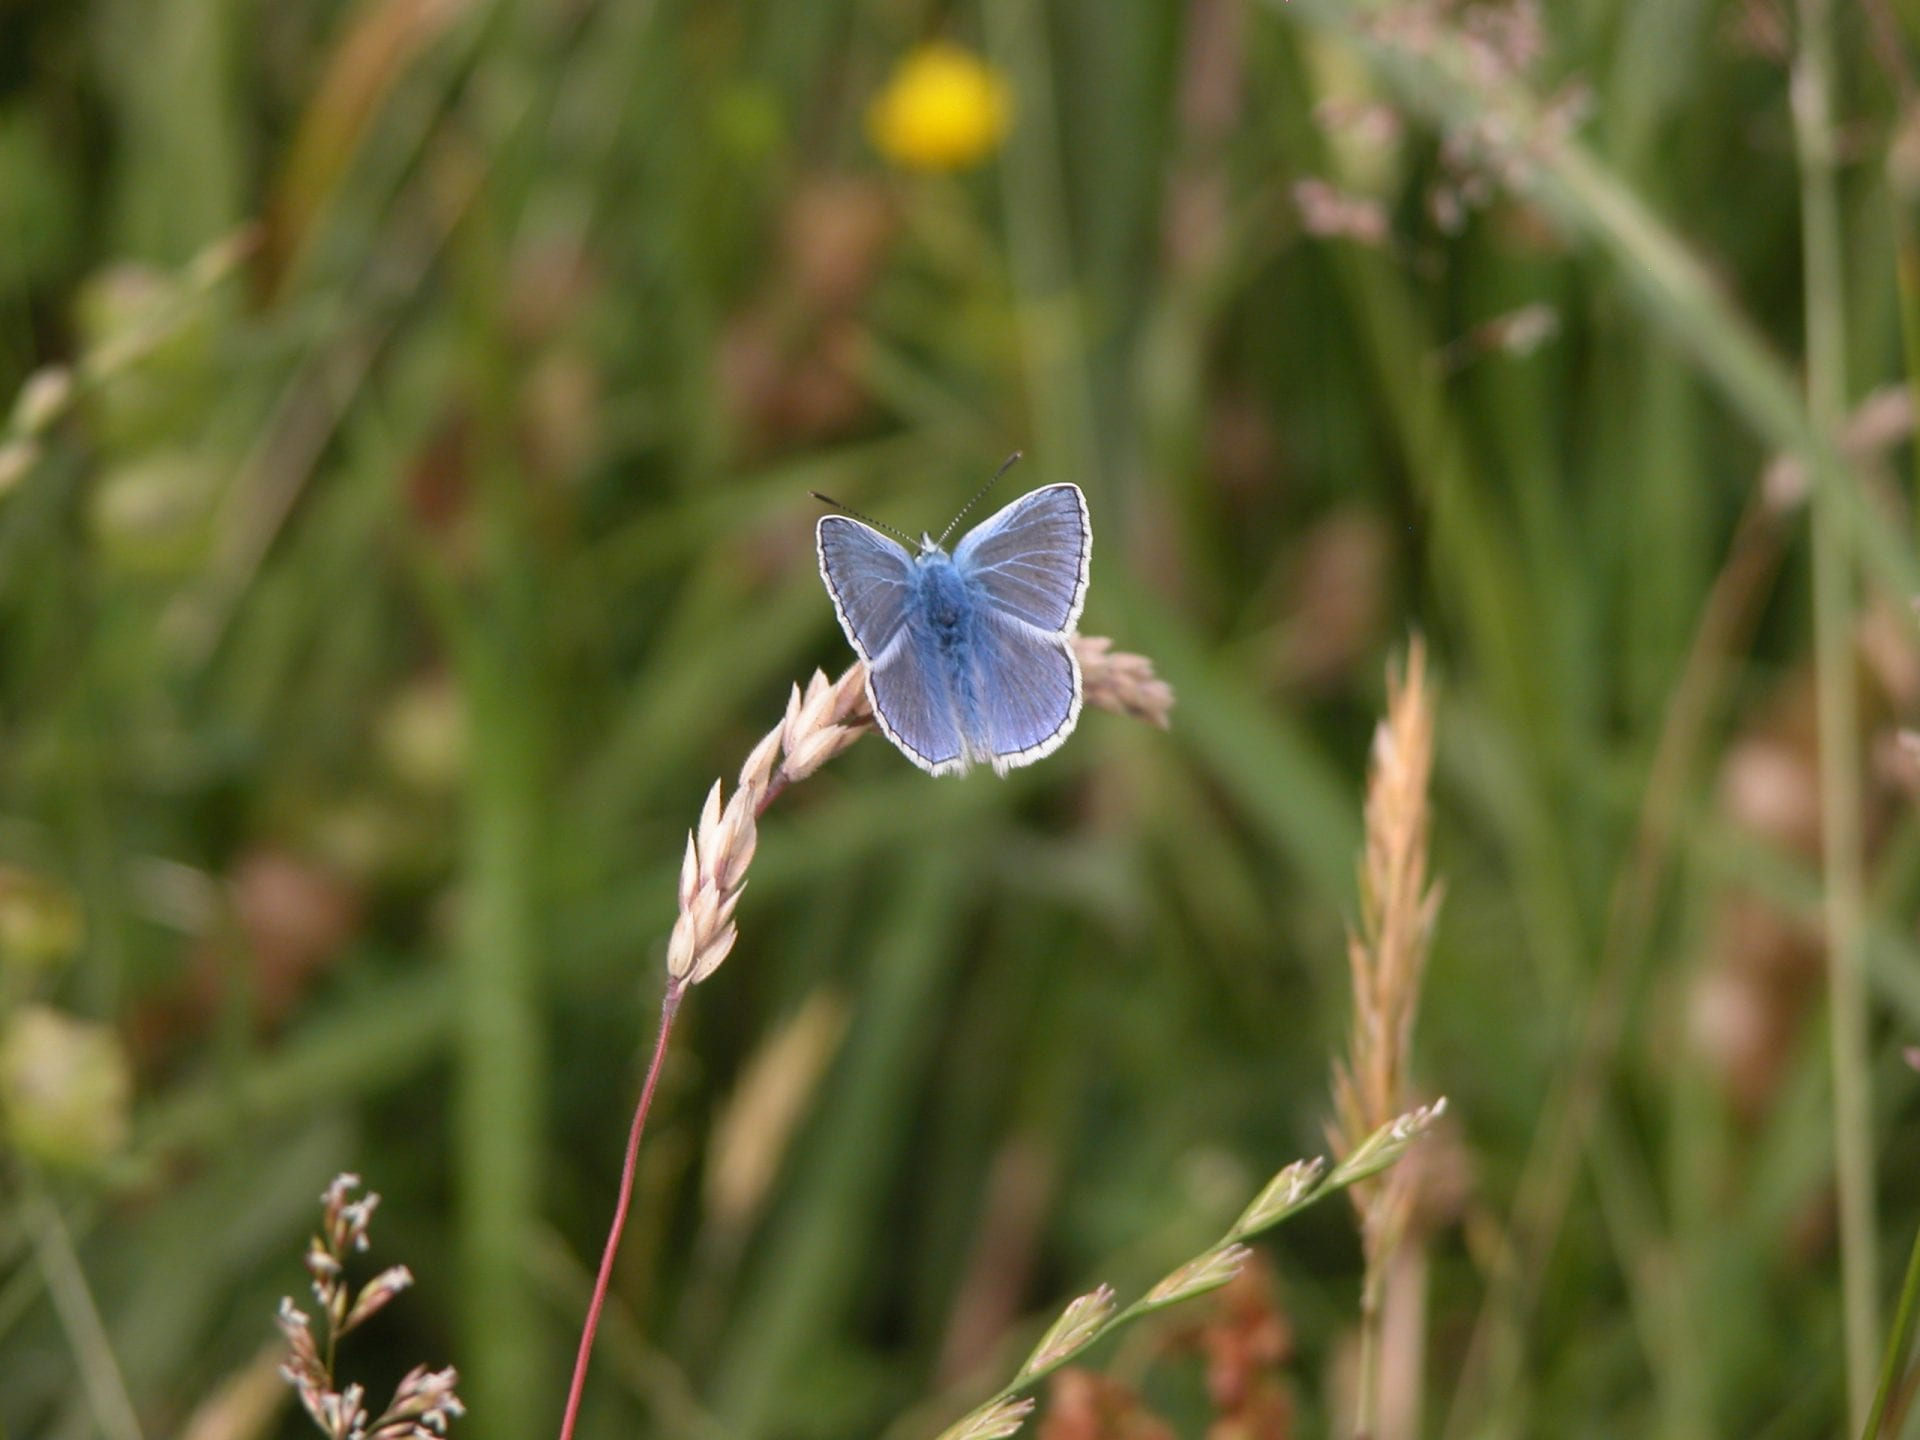 common-blue-butterfly-resting-on-grass-in-meadow